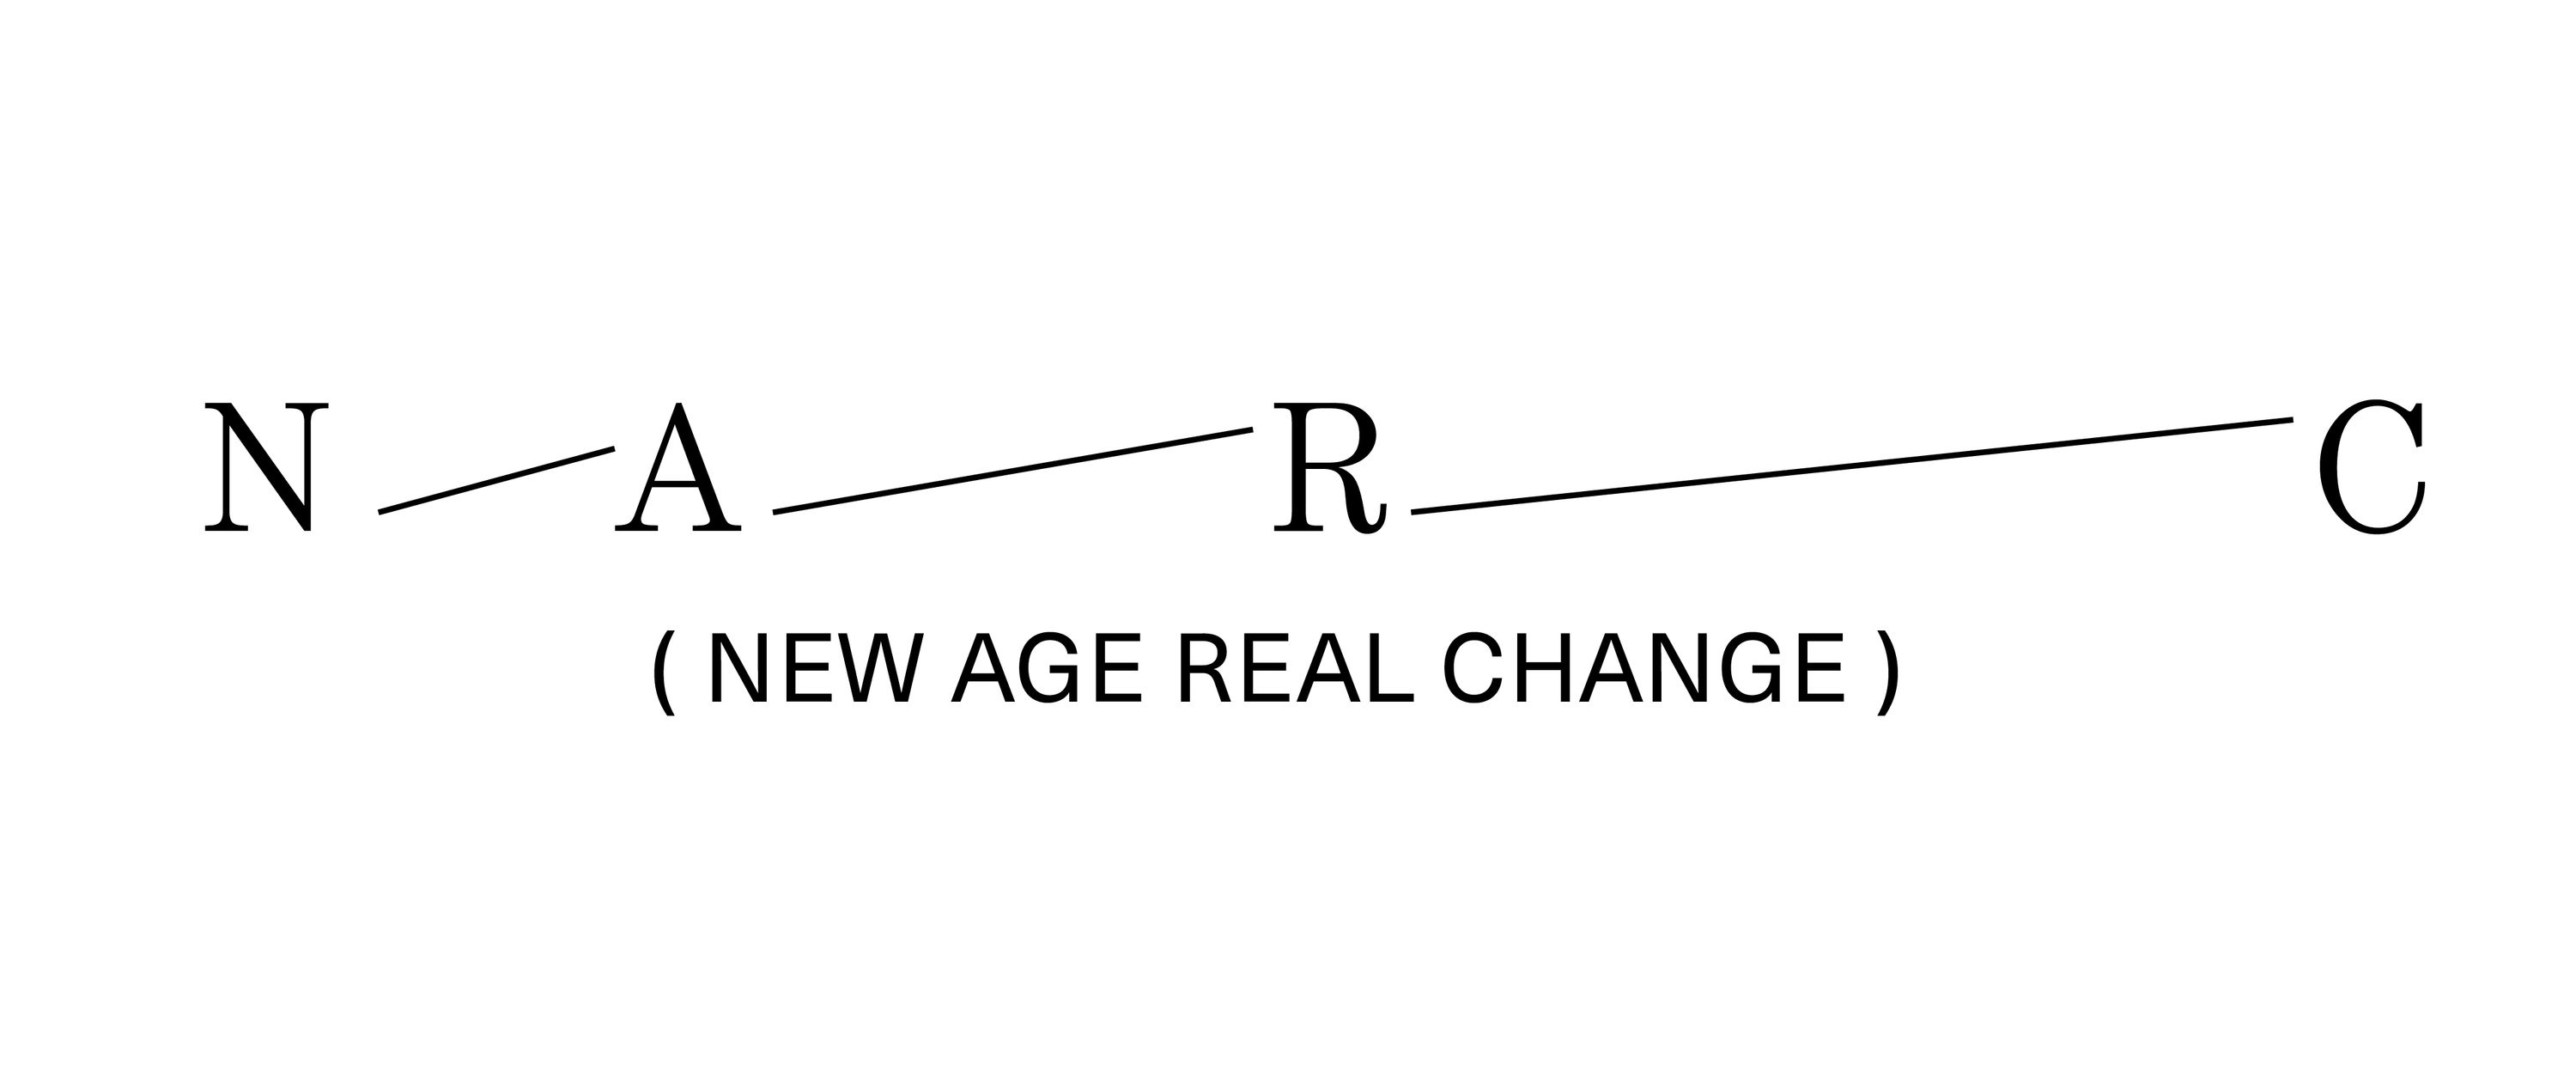 New Age Real Change (N-A-R-C) logo